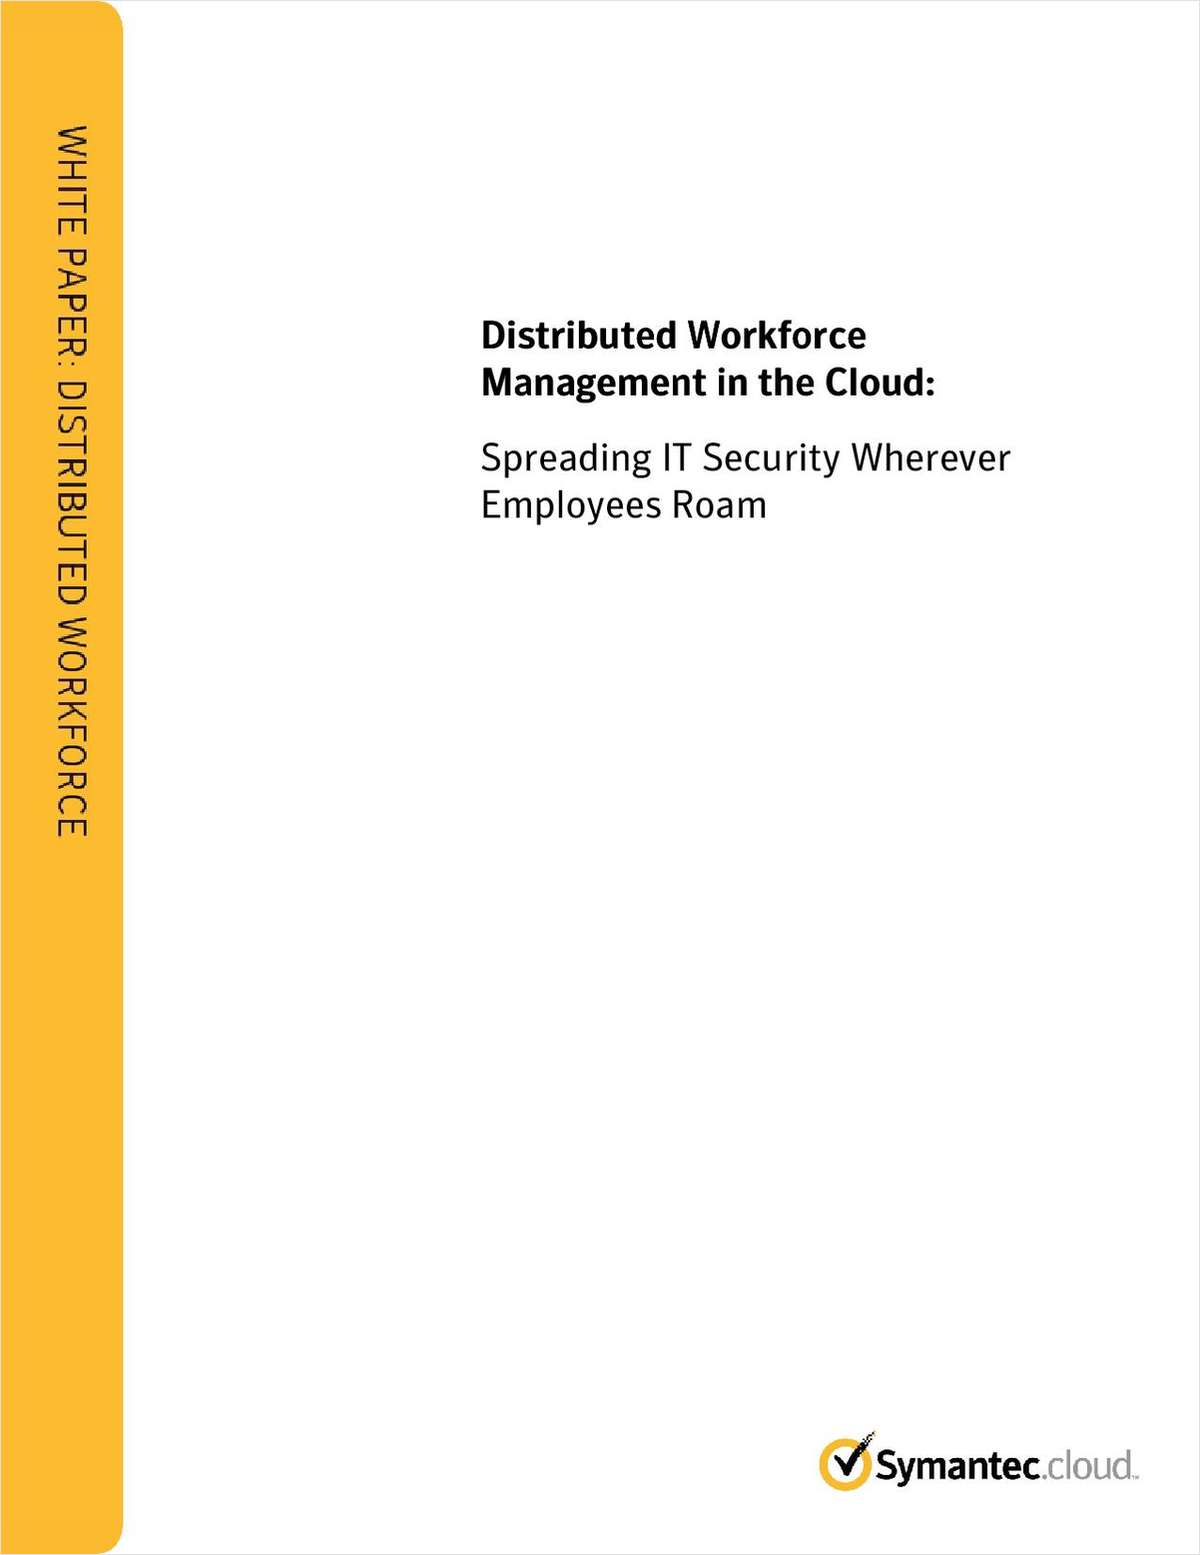 Distributed Workforce Management in the Cloud: Spreading IT Security Wherever Employees Roam